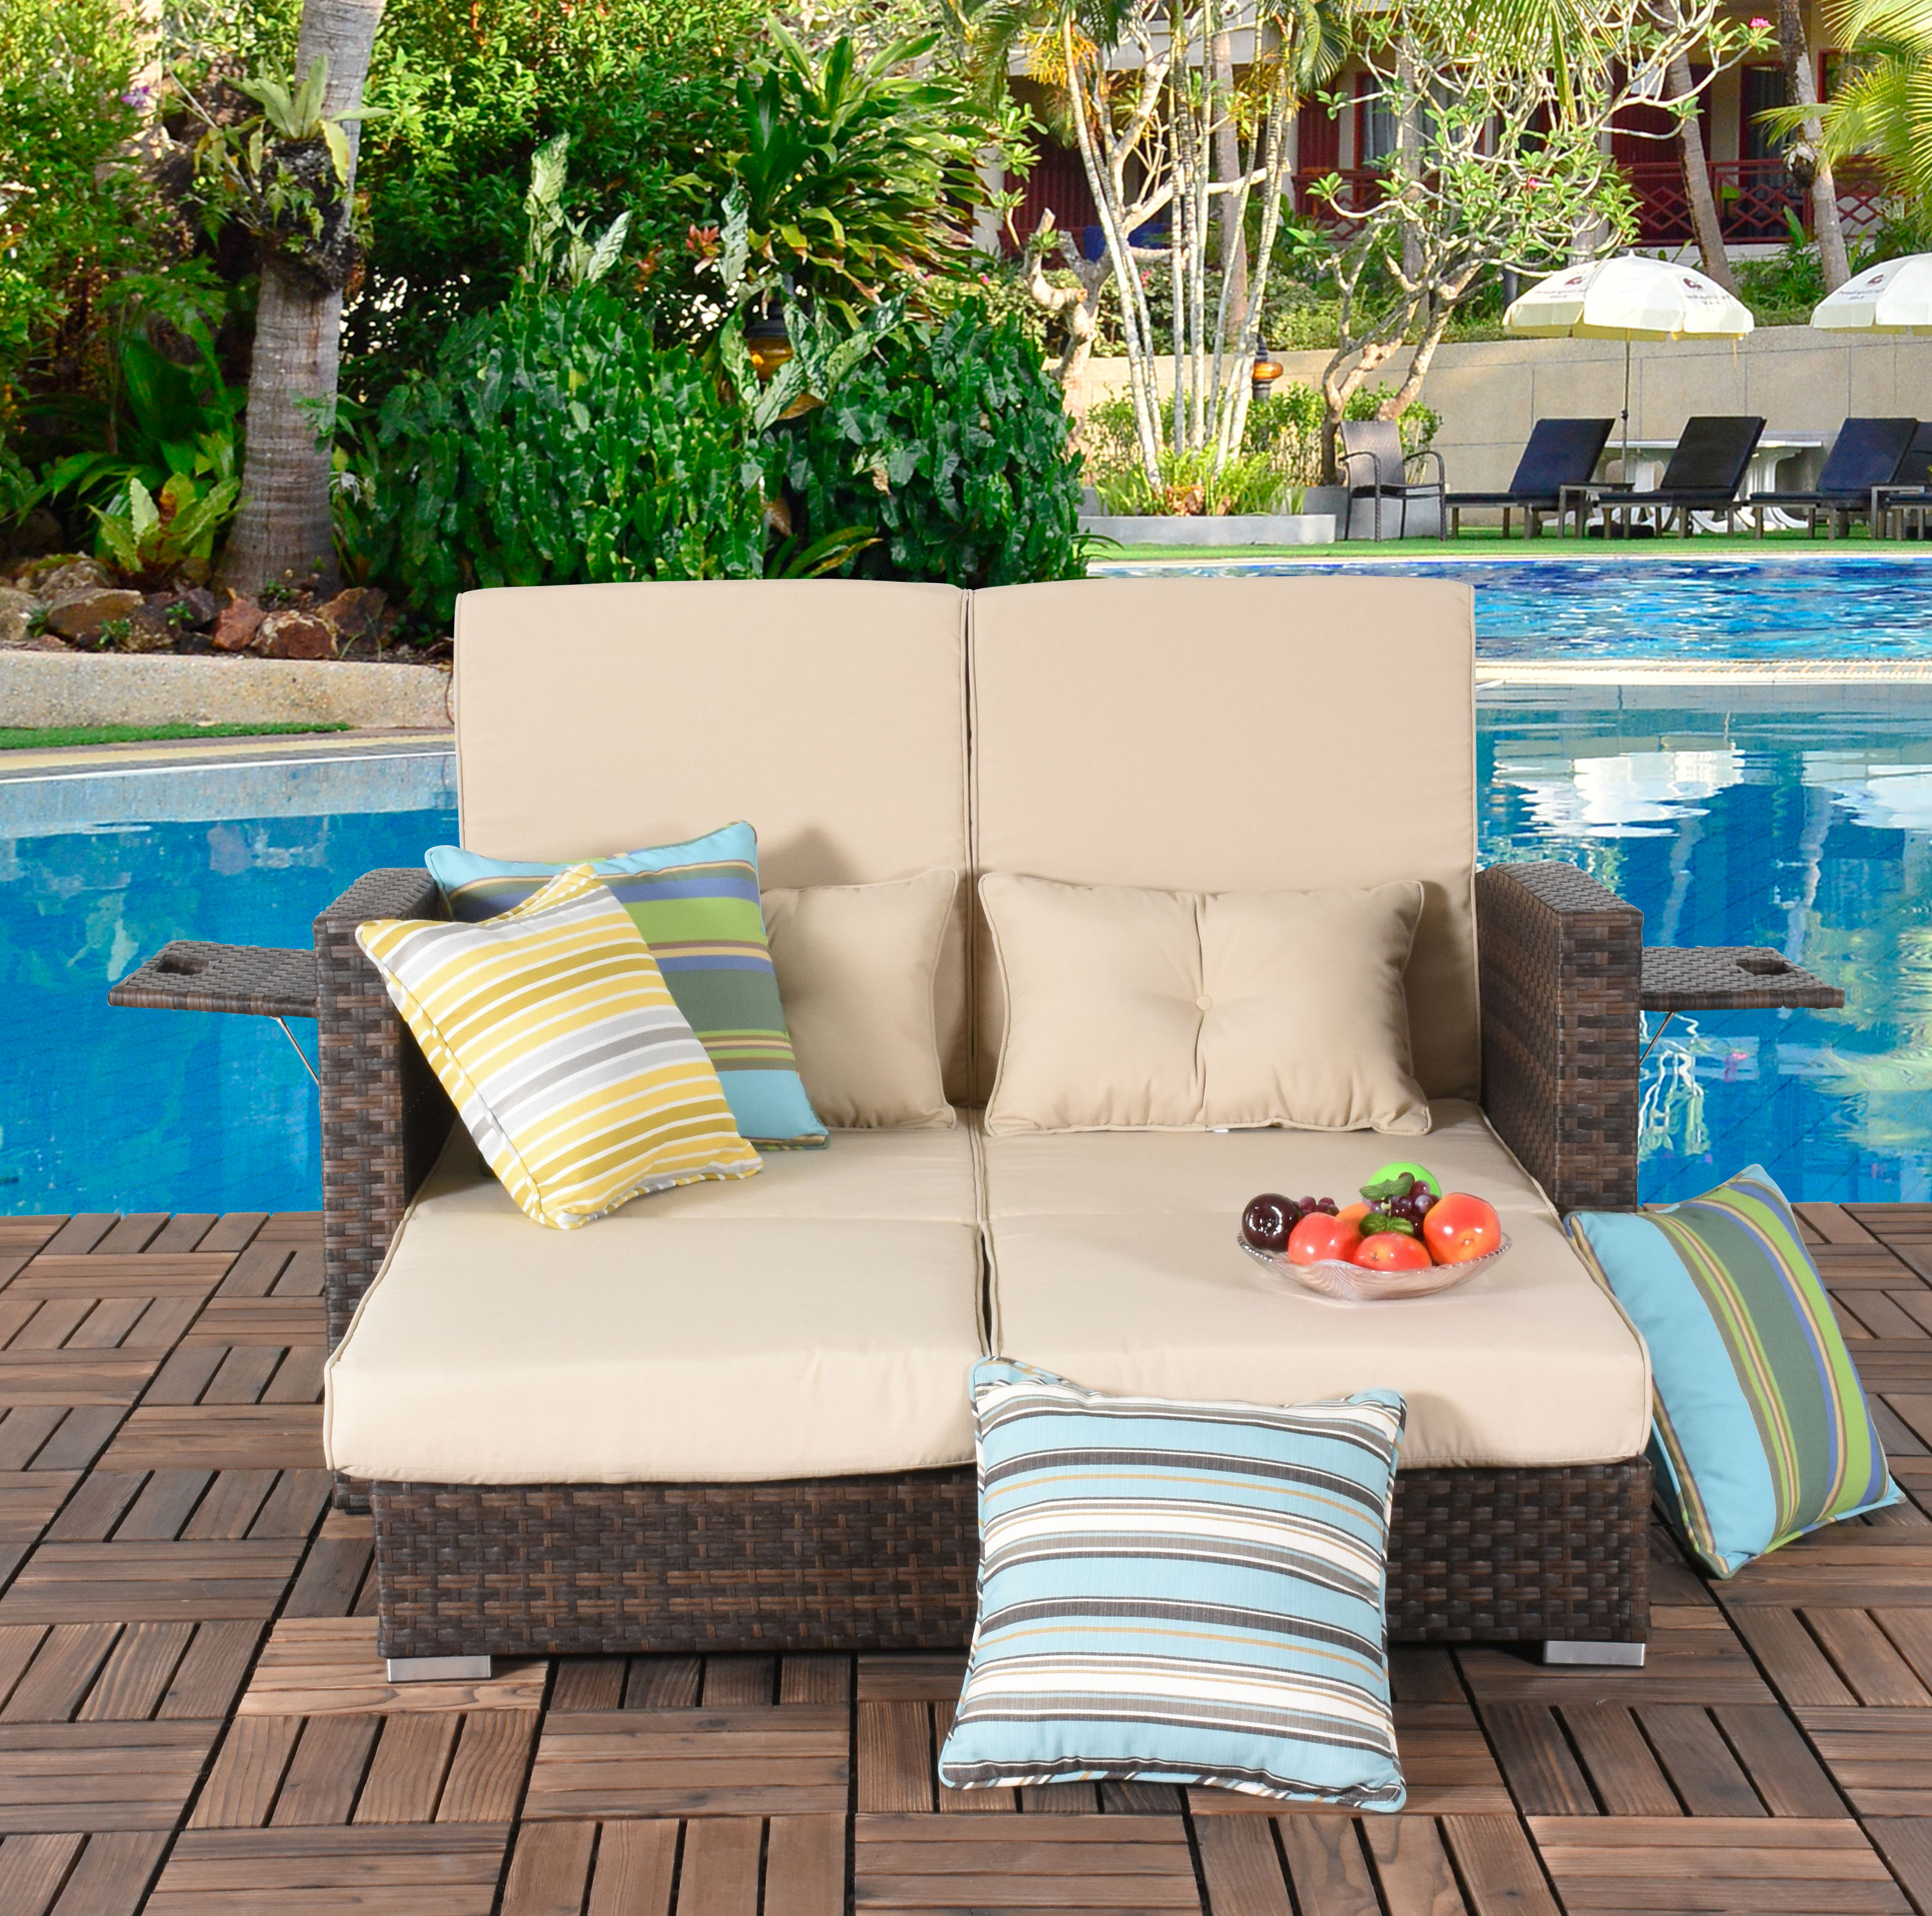 Most Popular Cabrillo Patio Daybed With Cushions Inside Beal Patio Daybeds With Cushions (View 16 of 25)